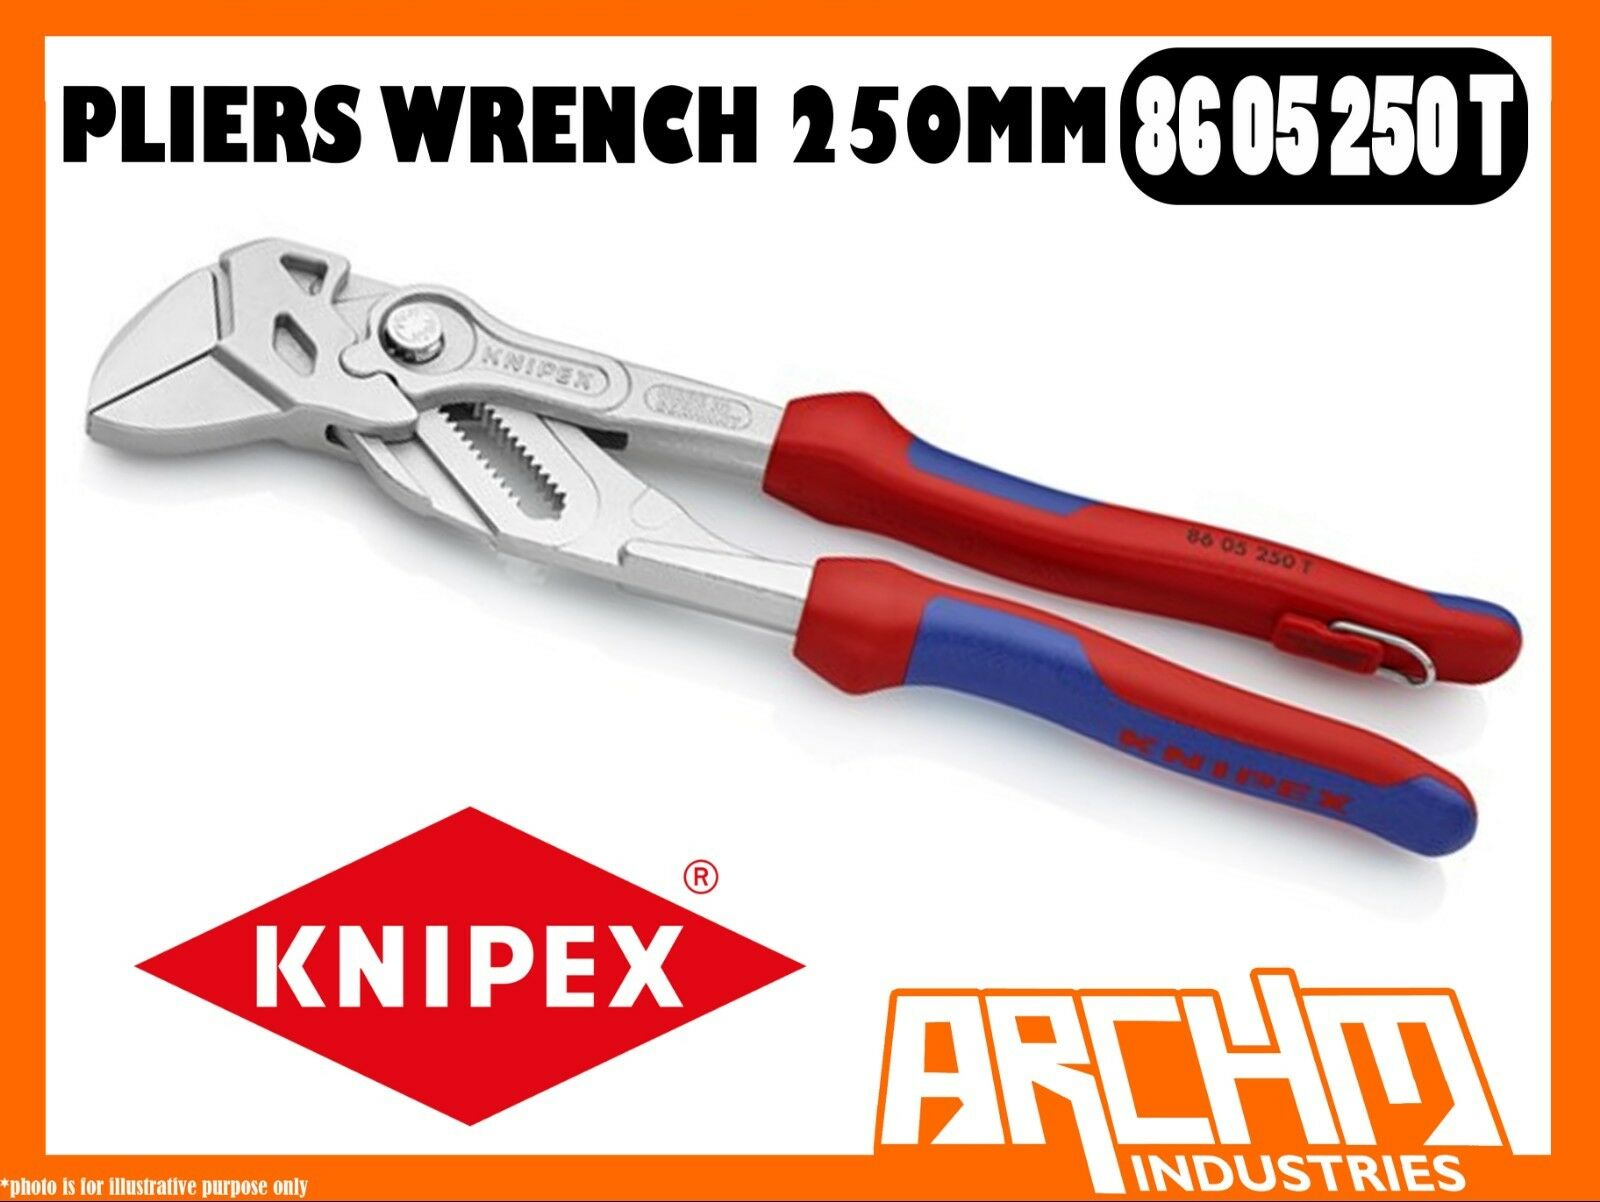 KNIPEX 8605250T - PLIERS WRENCH - 250MM - TETHERED CHROME ADJUSTABLE TIGHTENING